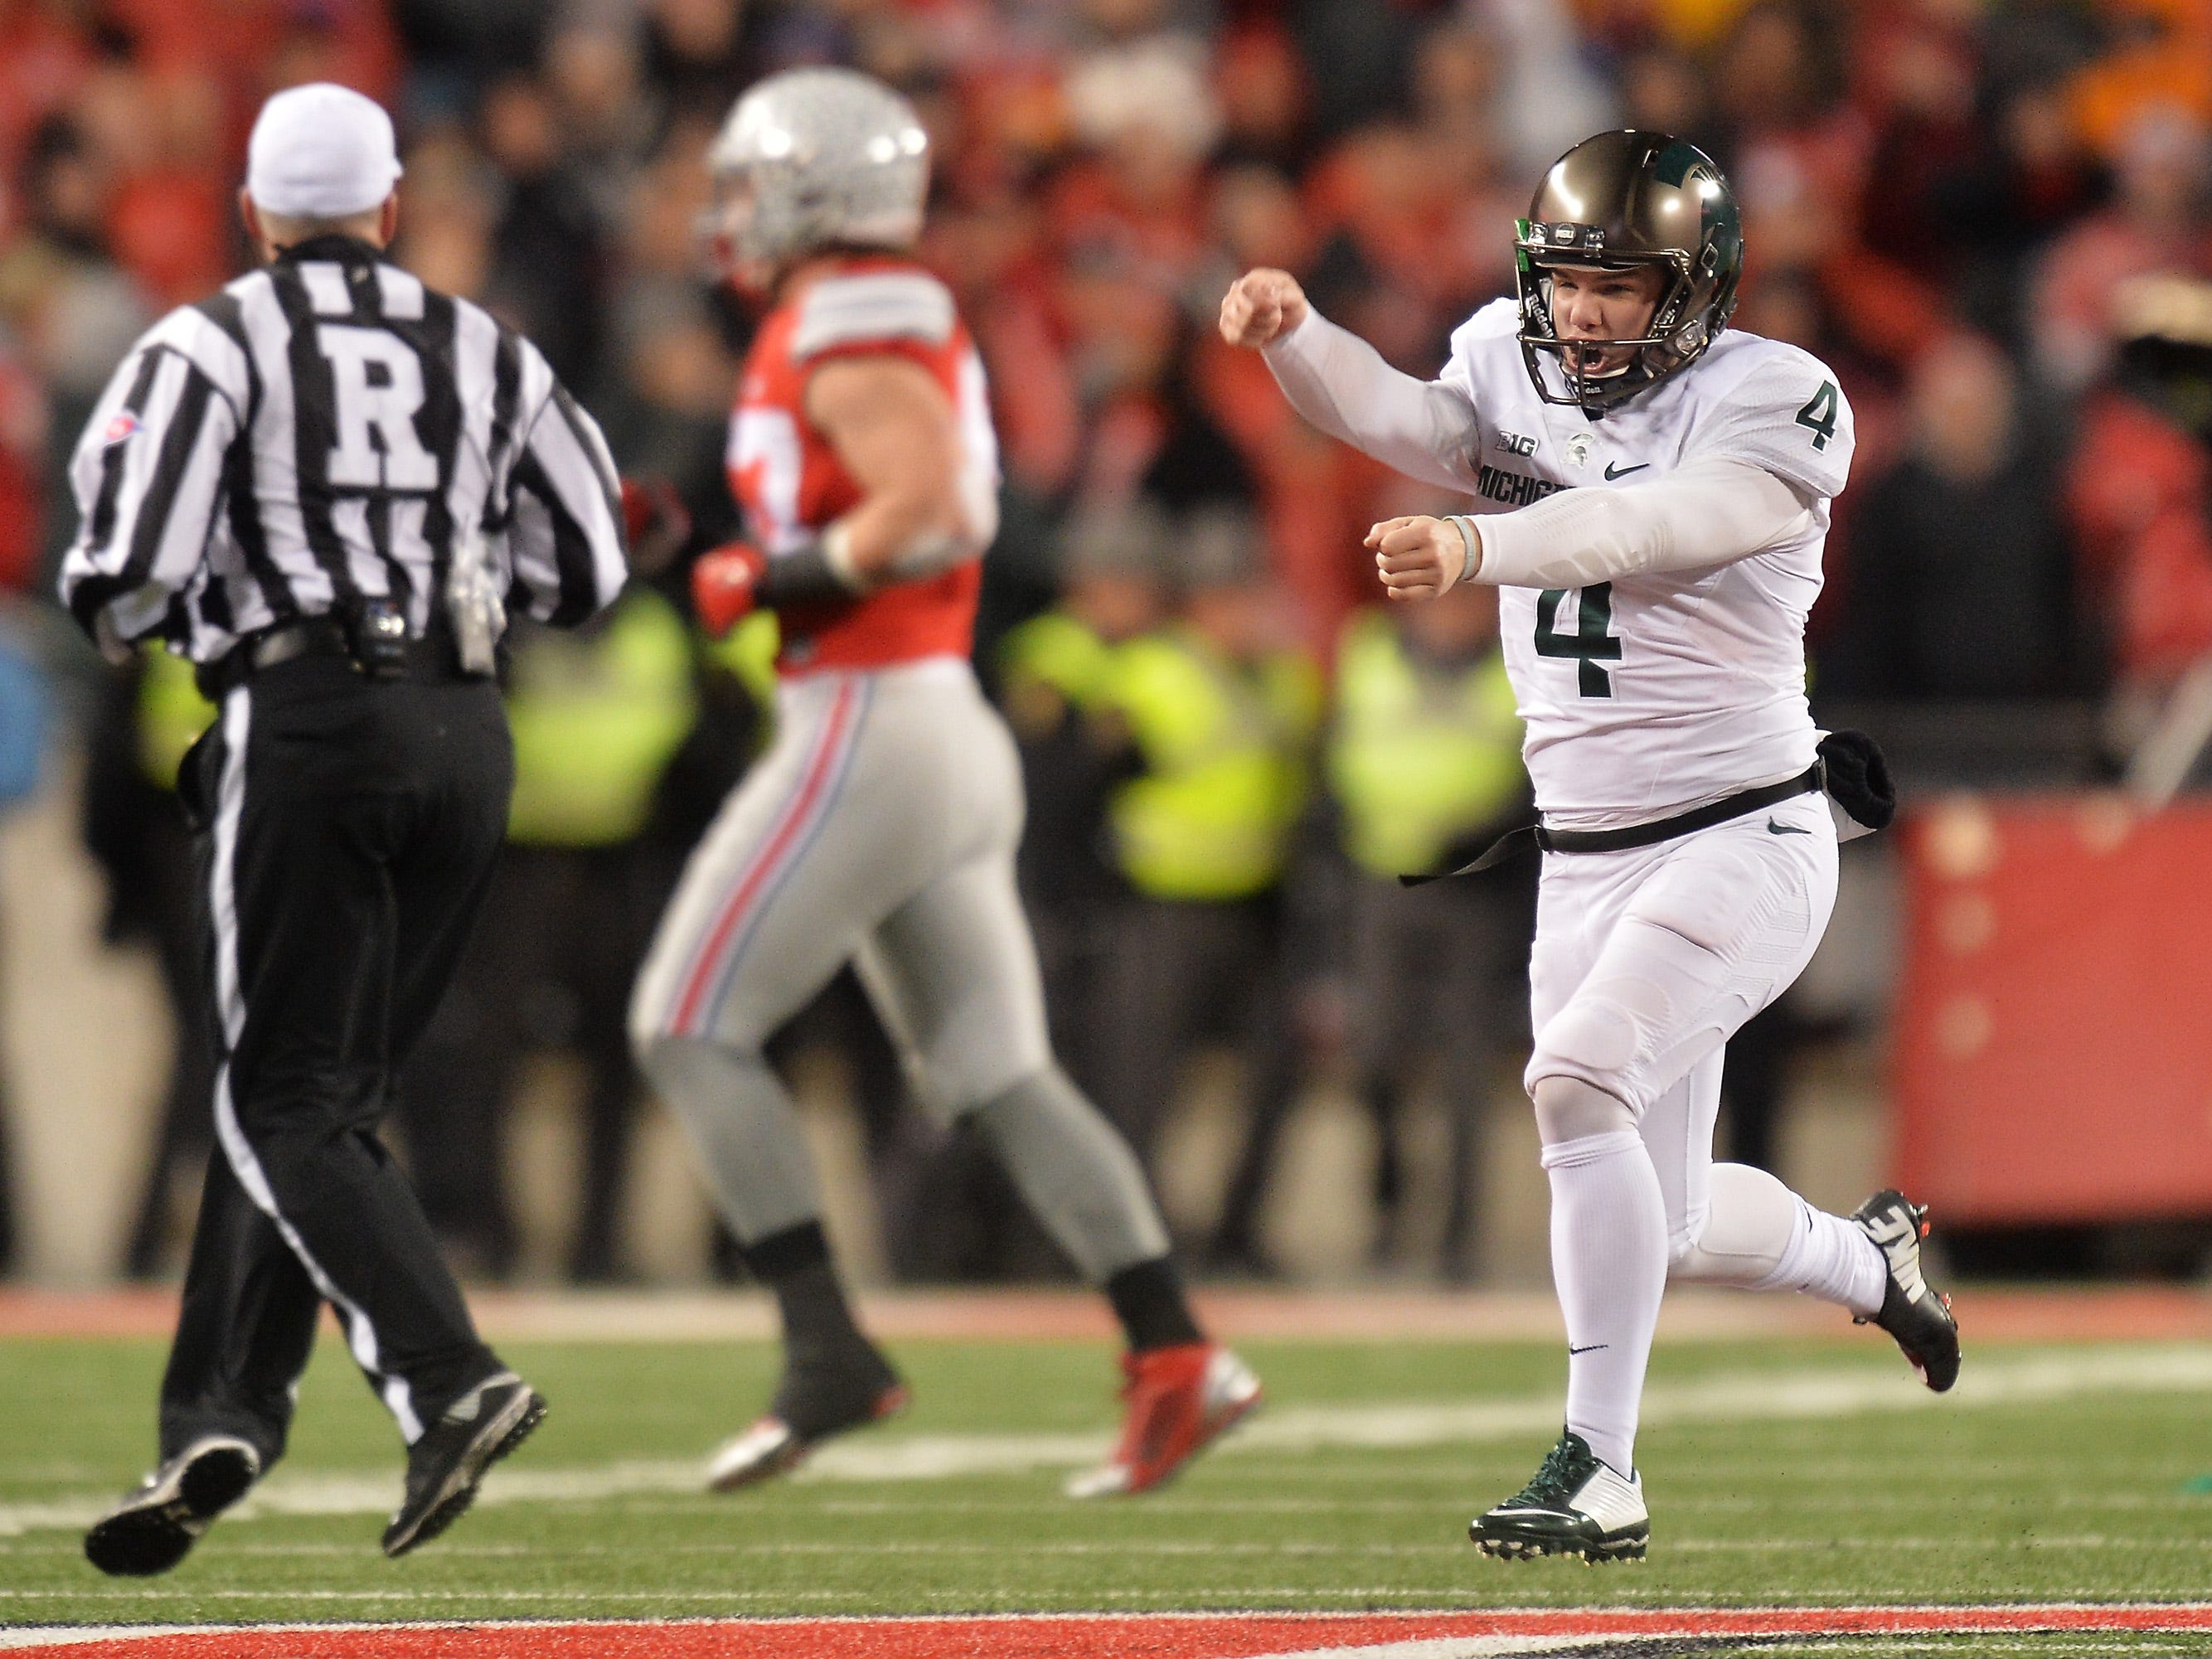 Nov. 21, 2015: No. 9 Michigan State 17, No. 2 Ohio State 14: Kicker Michael runs up the field celebrating after kicking a 41-yard field goal as time expired to stun the Buckeyes.